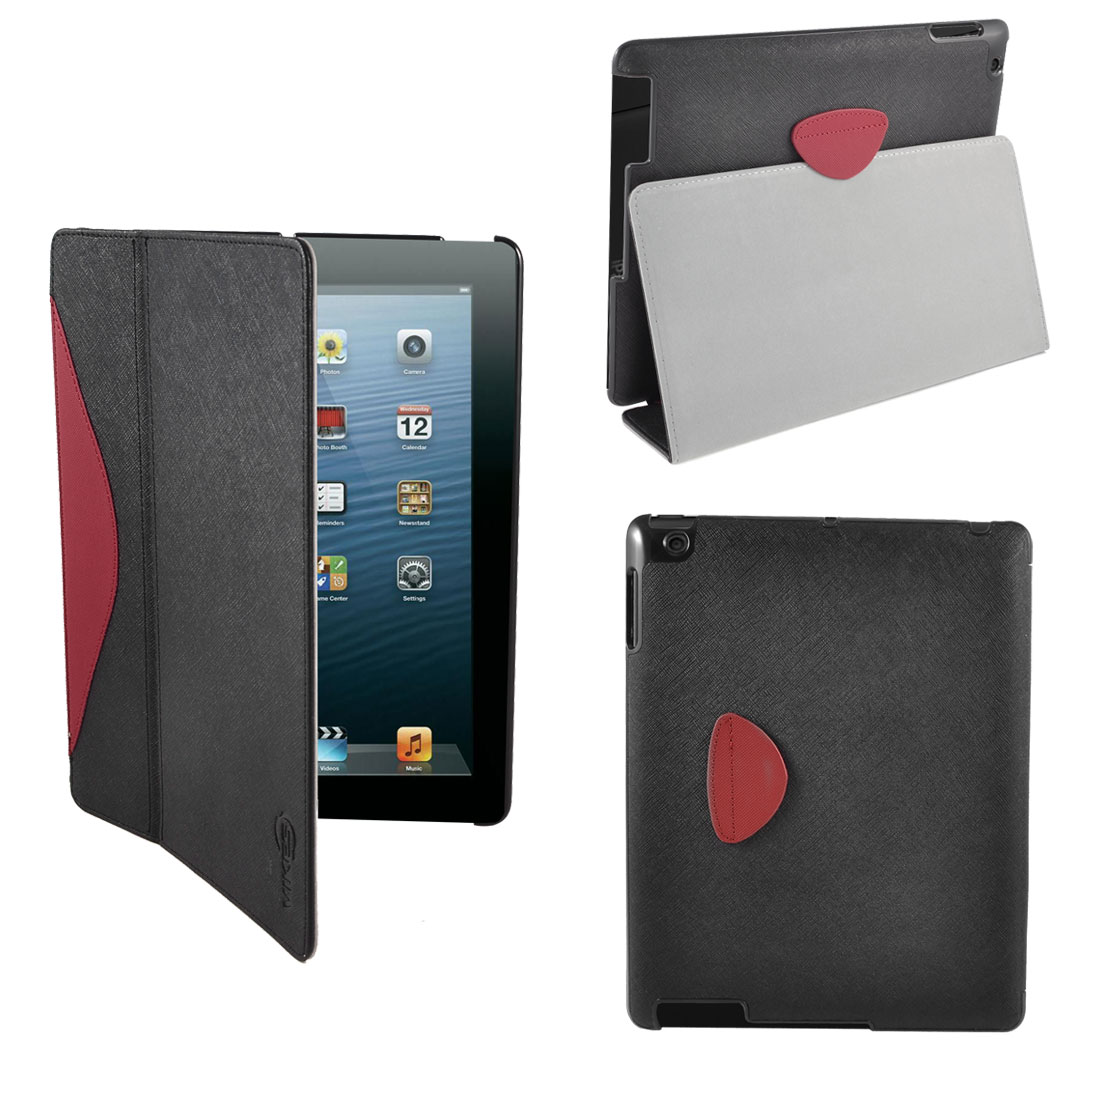 Black Red Faux Leather Folio Wake Up Sleep Smart Stand Case Cover for iPad 2 3 4